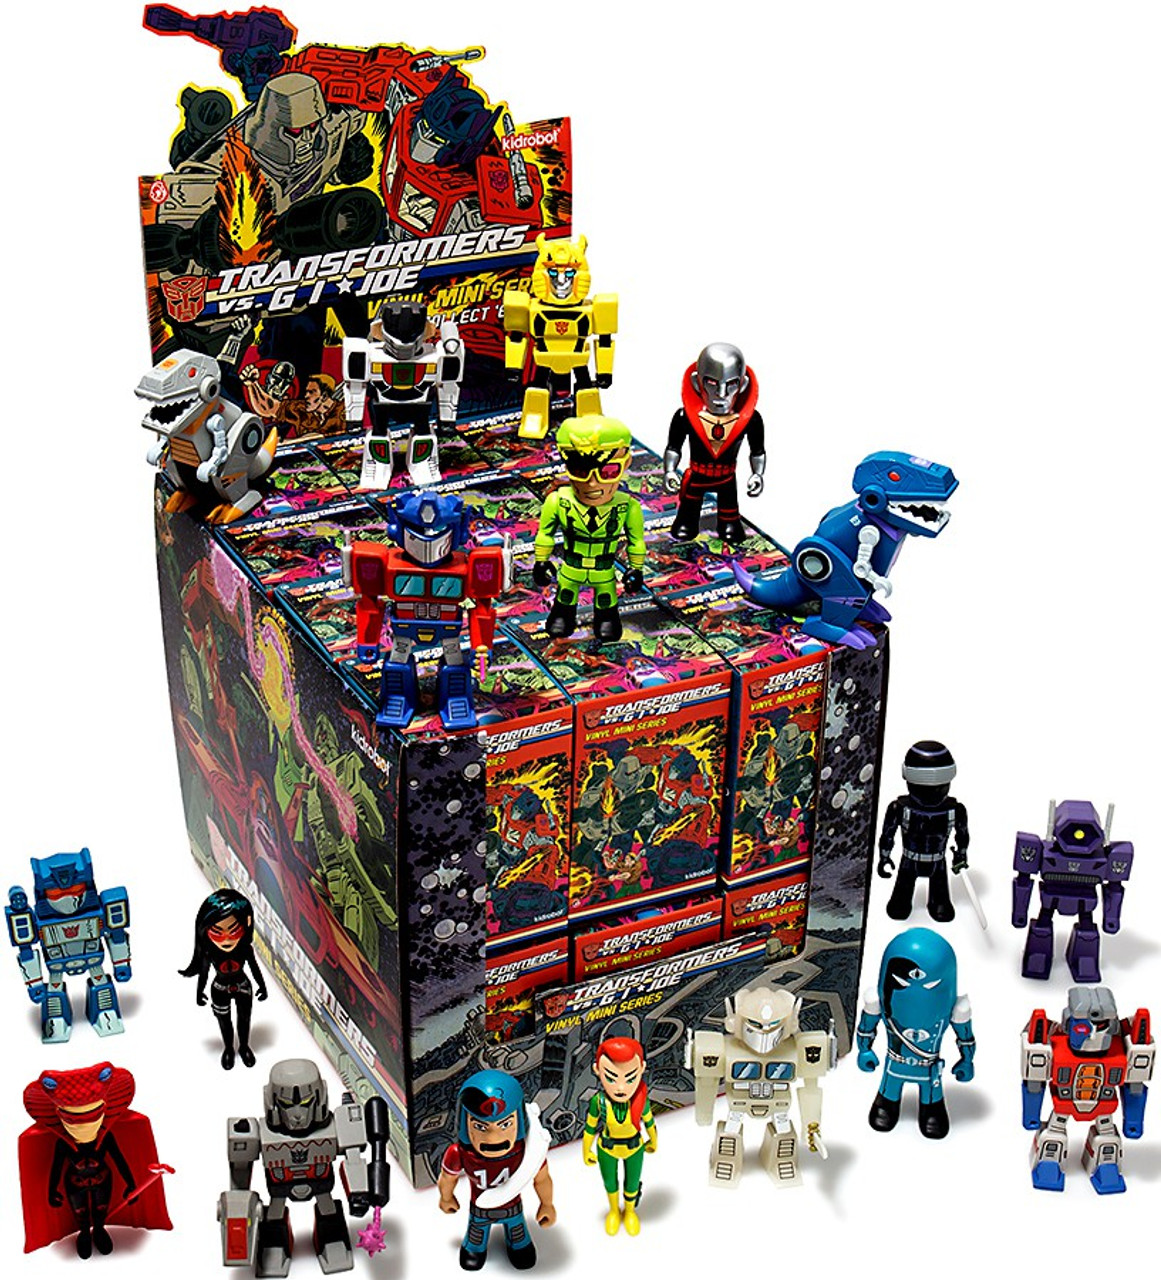 Transformers & GI Joe Vinyl Mini Series Mystery Box [24 Packs]